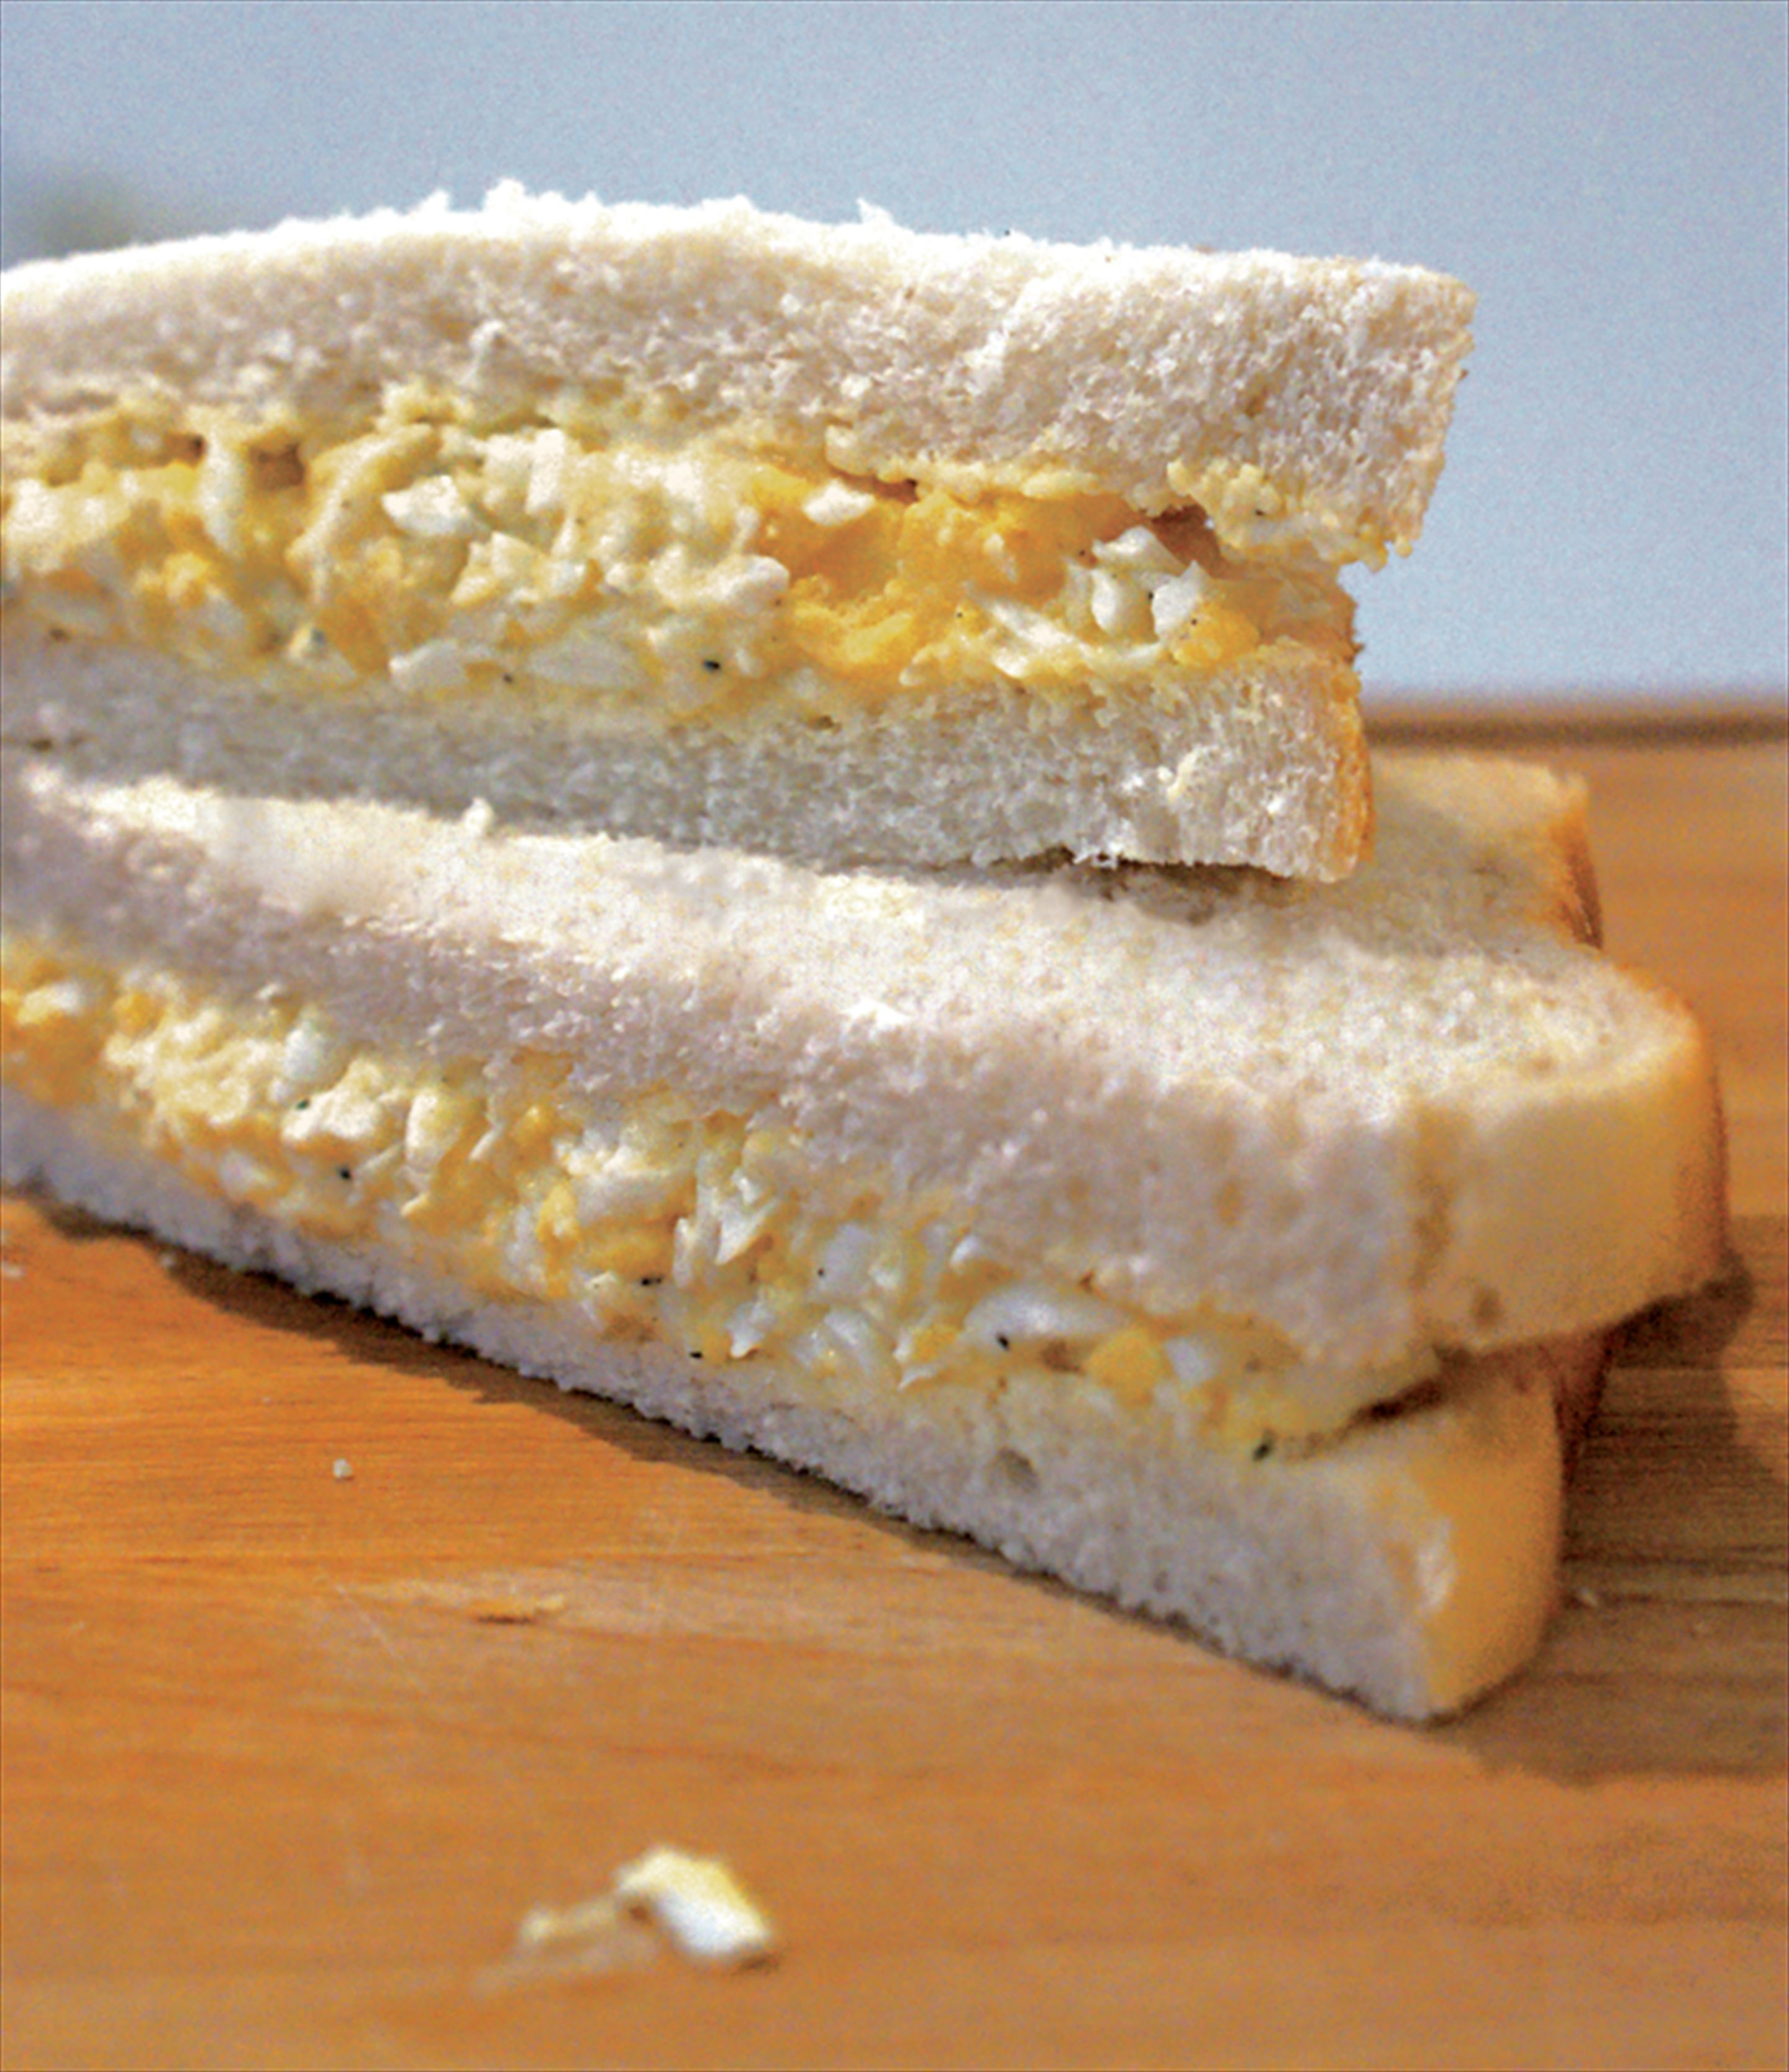 Egg mayonnaise sandwiches